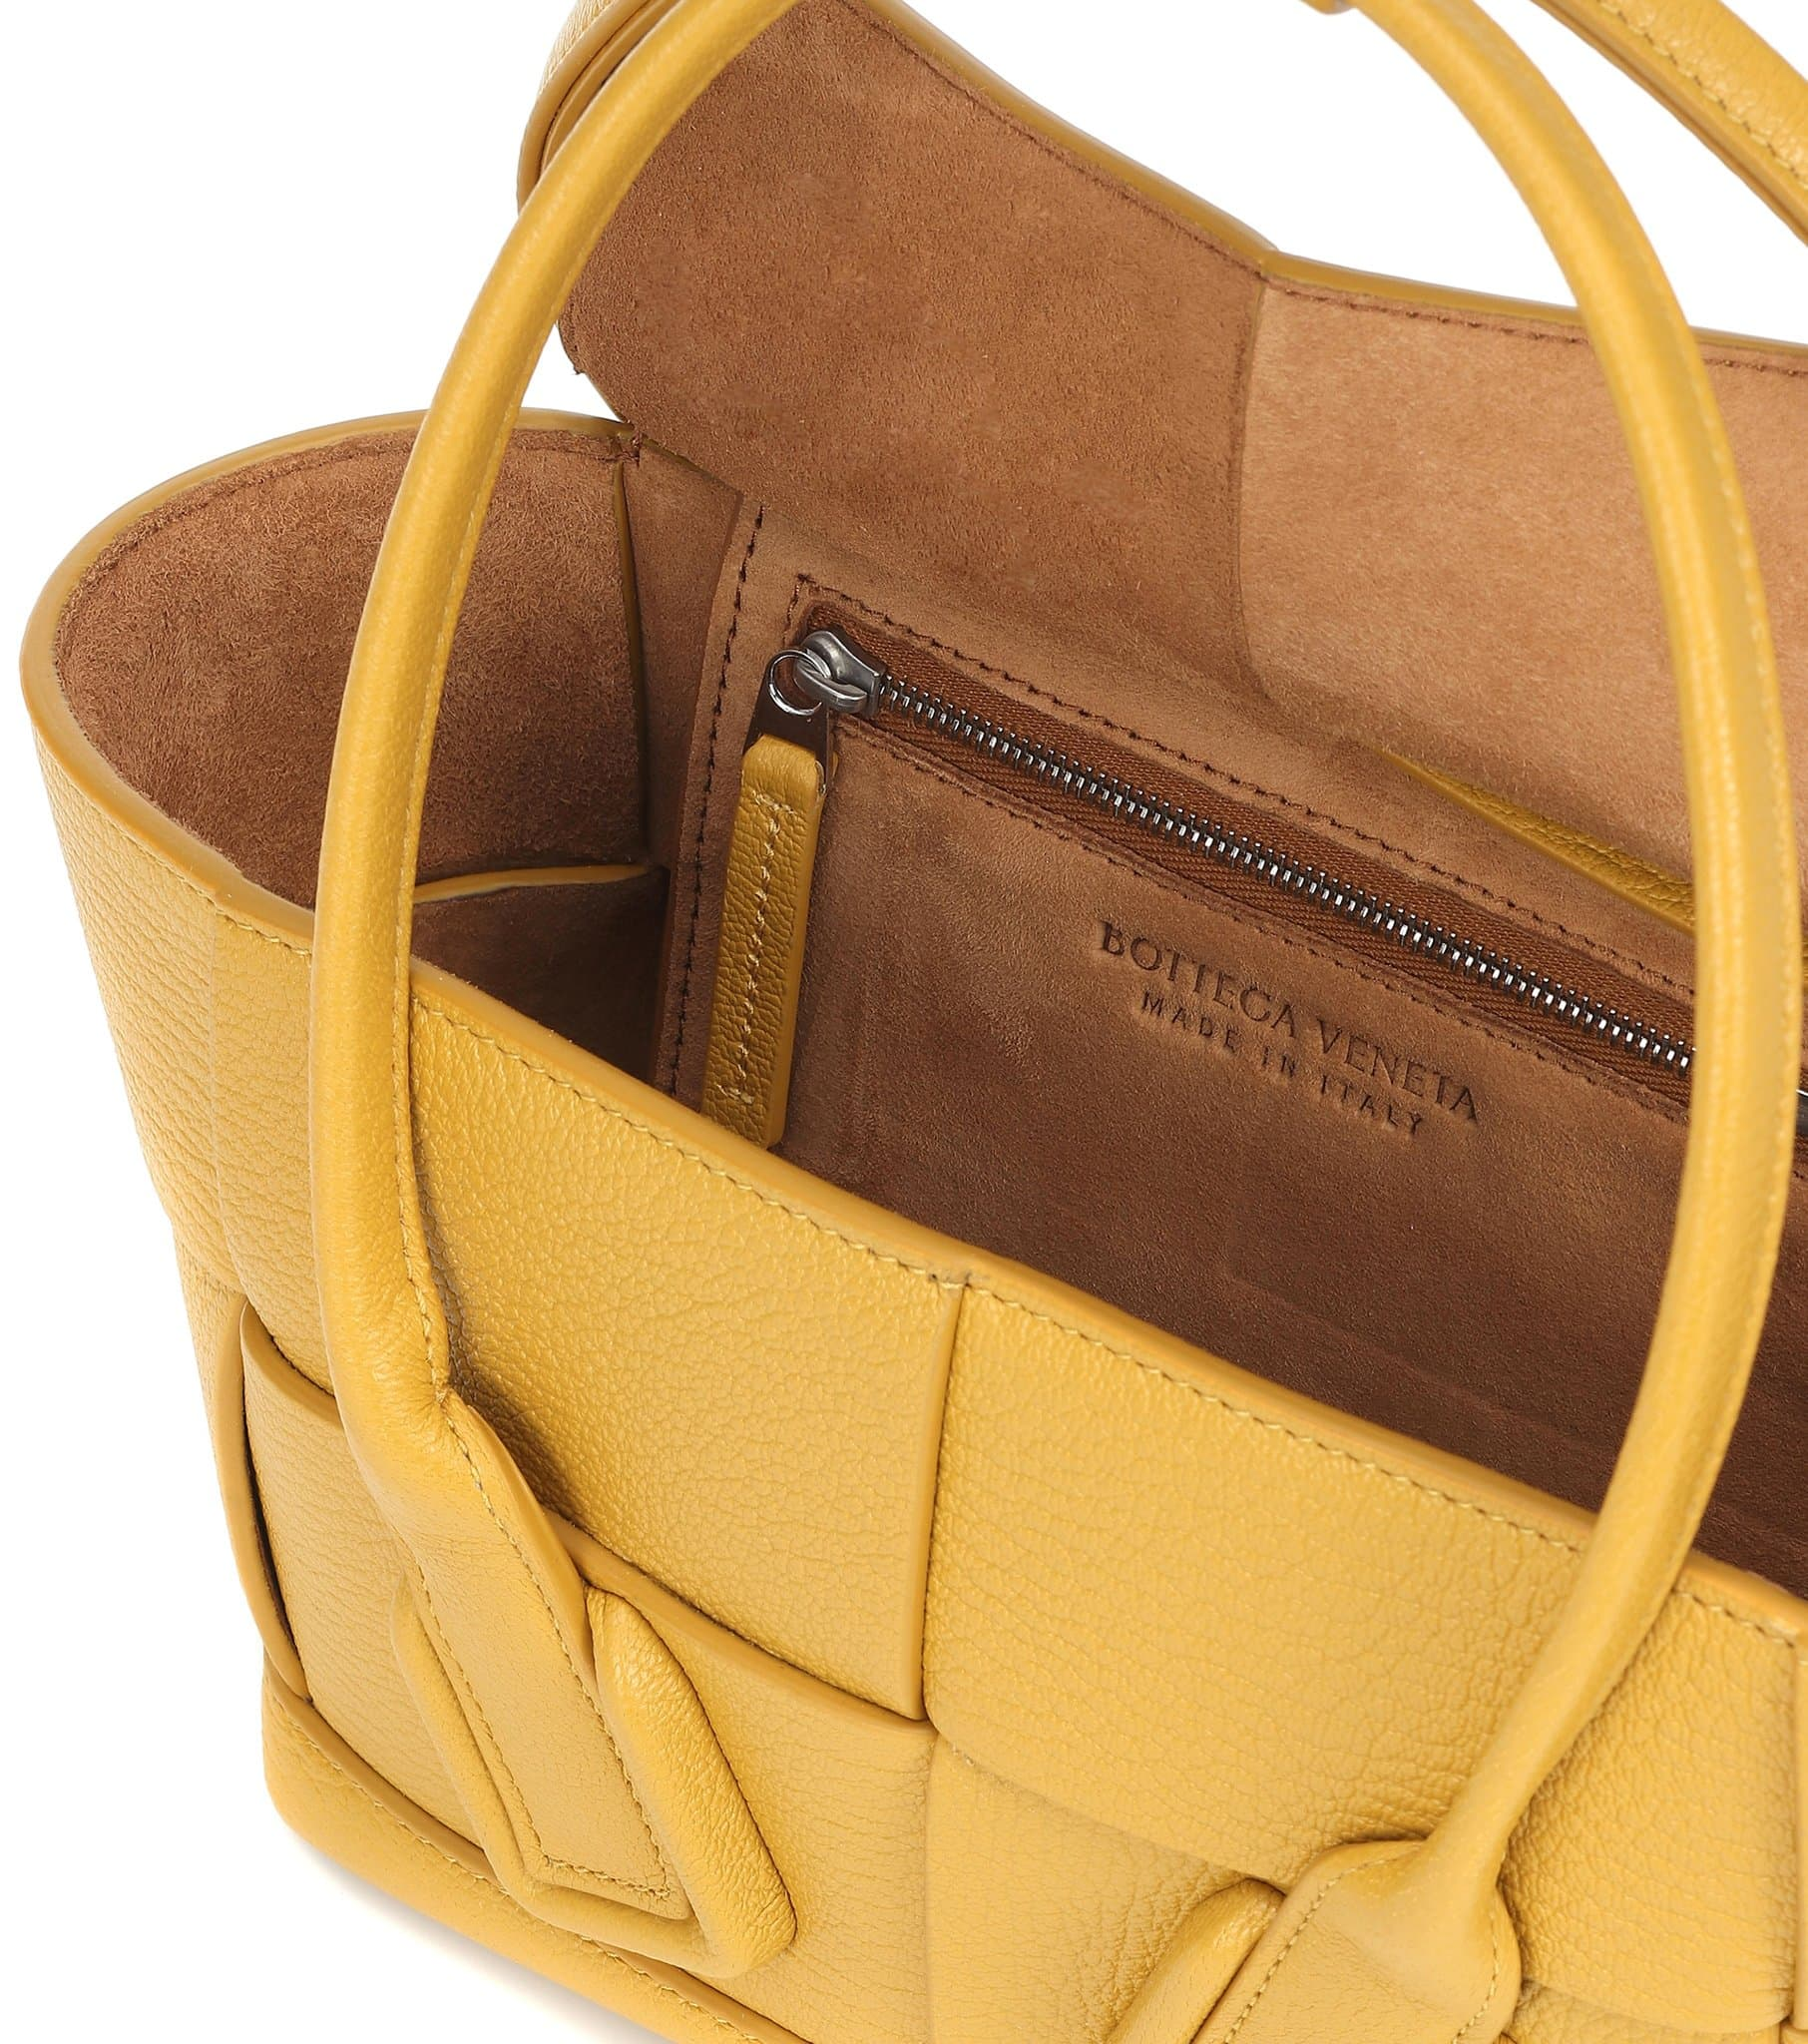 Bottega Veneta is known for its Italian heritage and still produces its bags and accessories in Italy